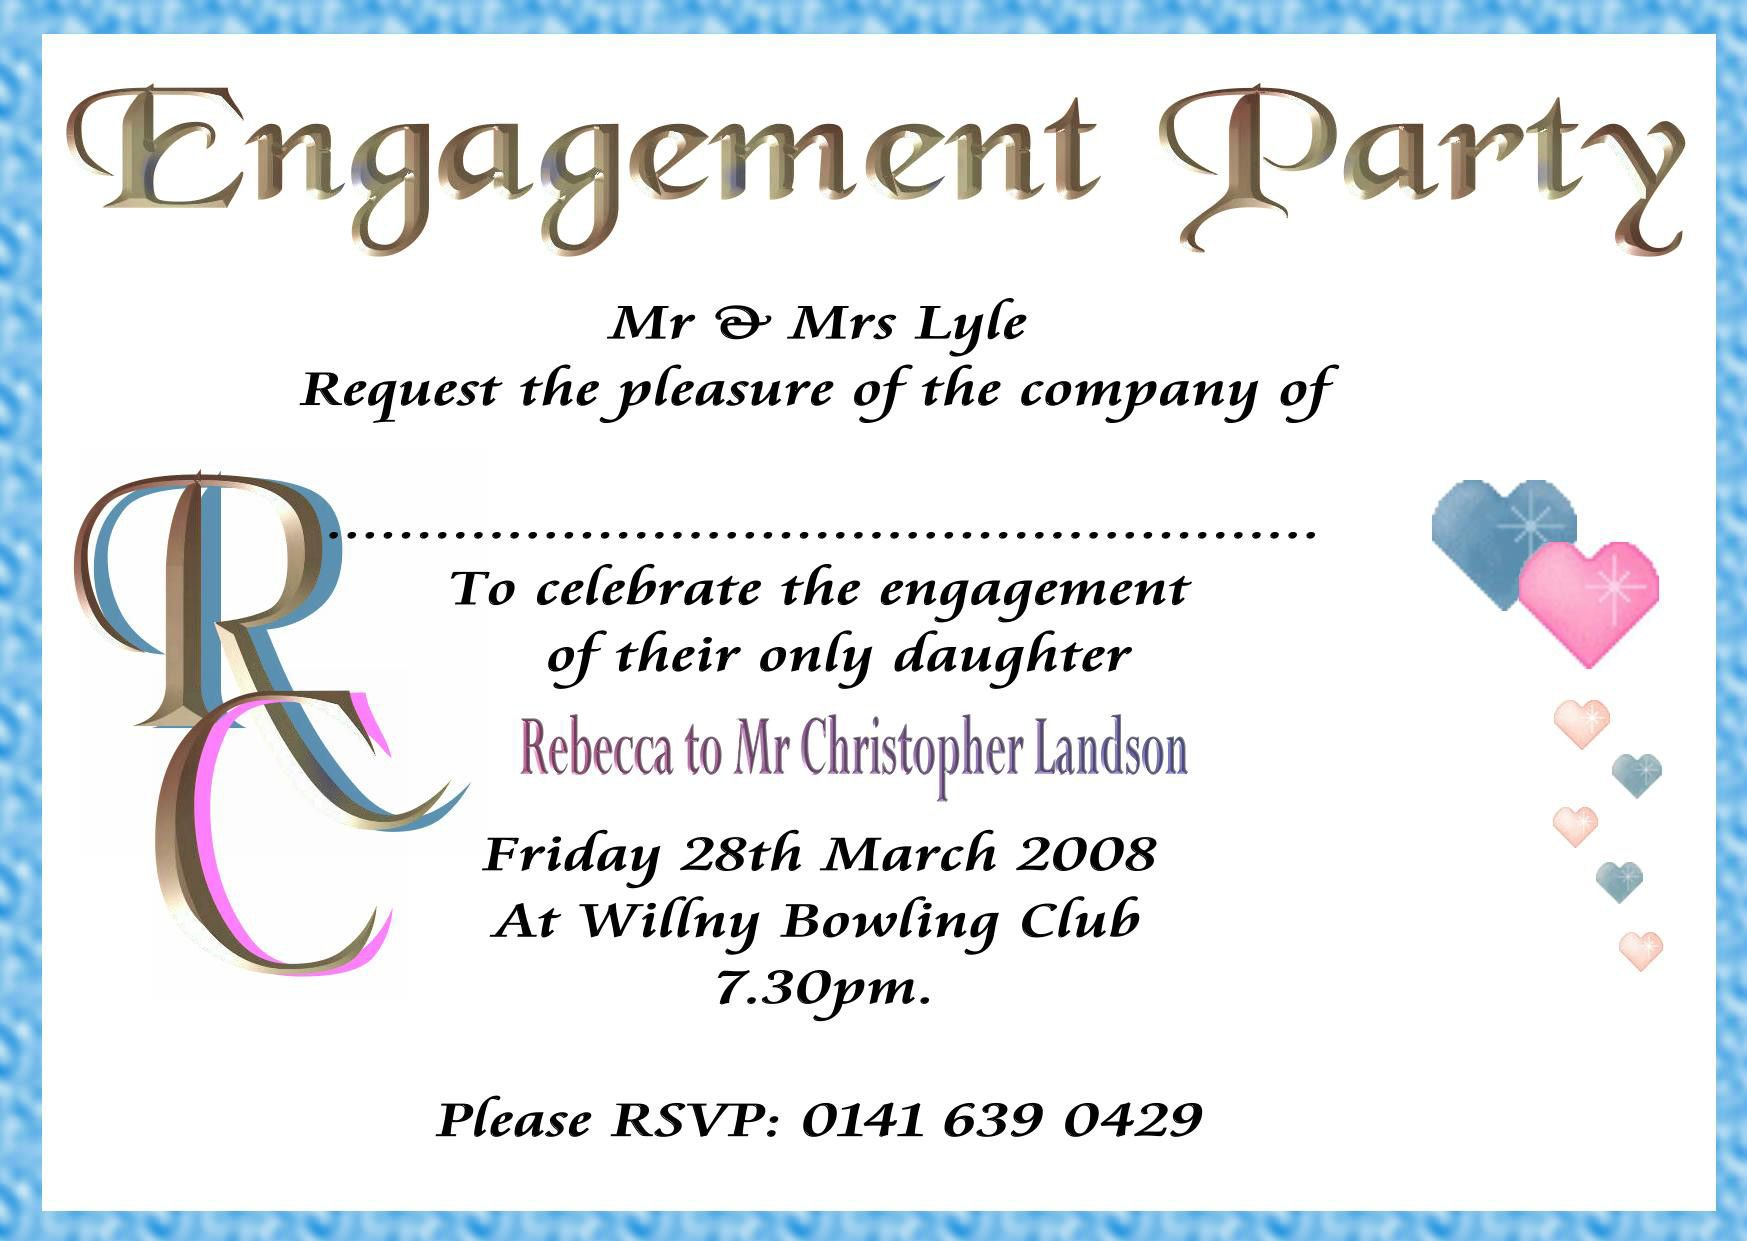 Engagement Party Invitation Template Invitation Templates Invitation  Templates Butterfly Invitation Templates Dinner Invitation Posts Related To  Format Of Engagement Invitation